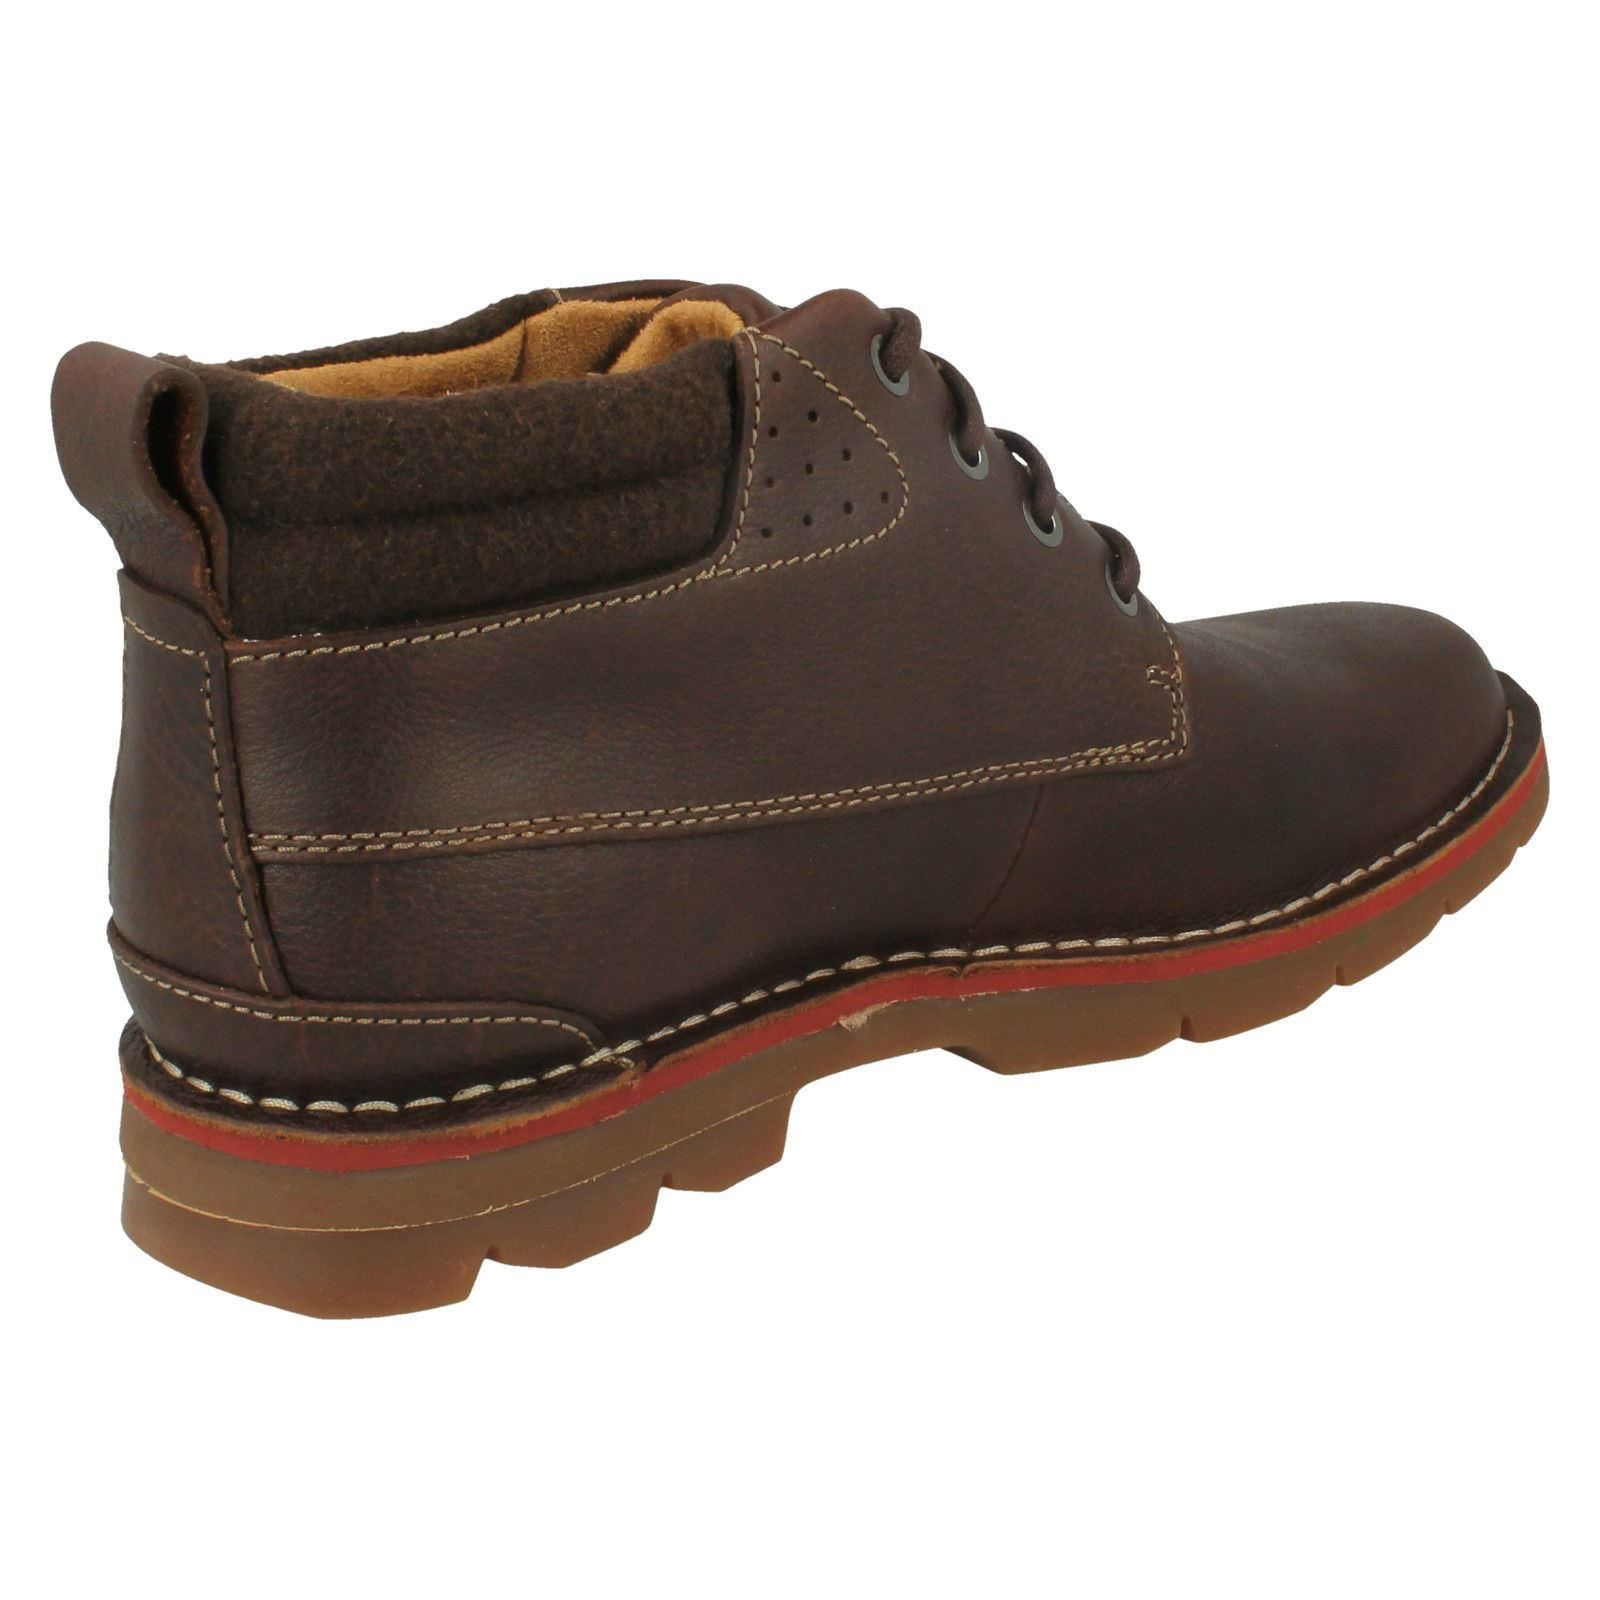 Mens-Clarks-Warm-Lined-Casual-Boots-039-Varick-Heal-039 thumbnail 3